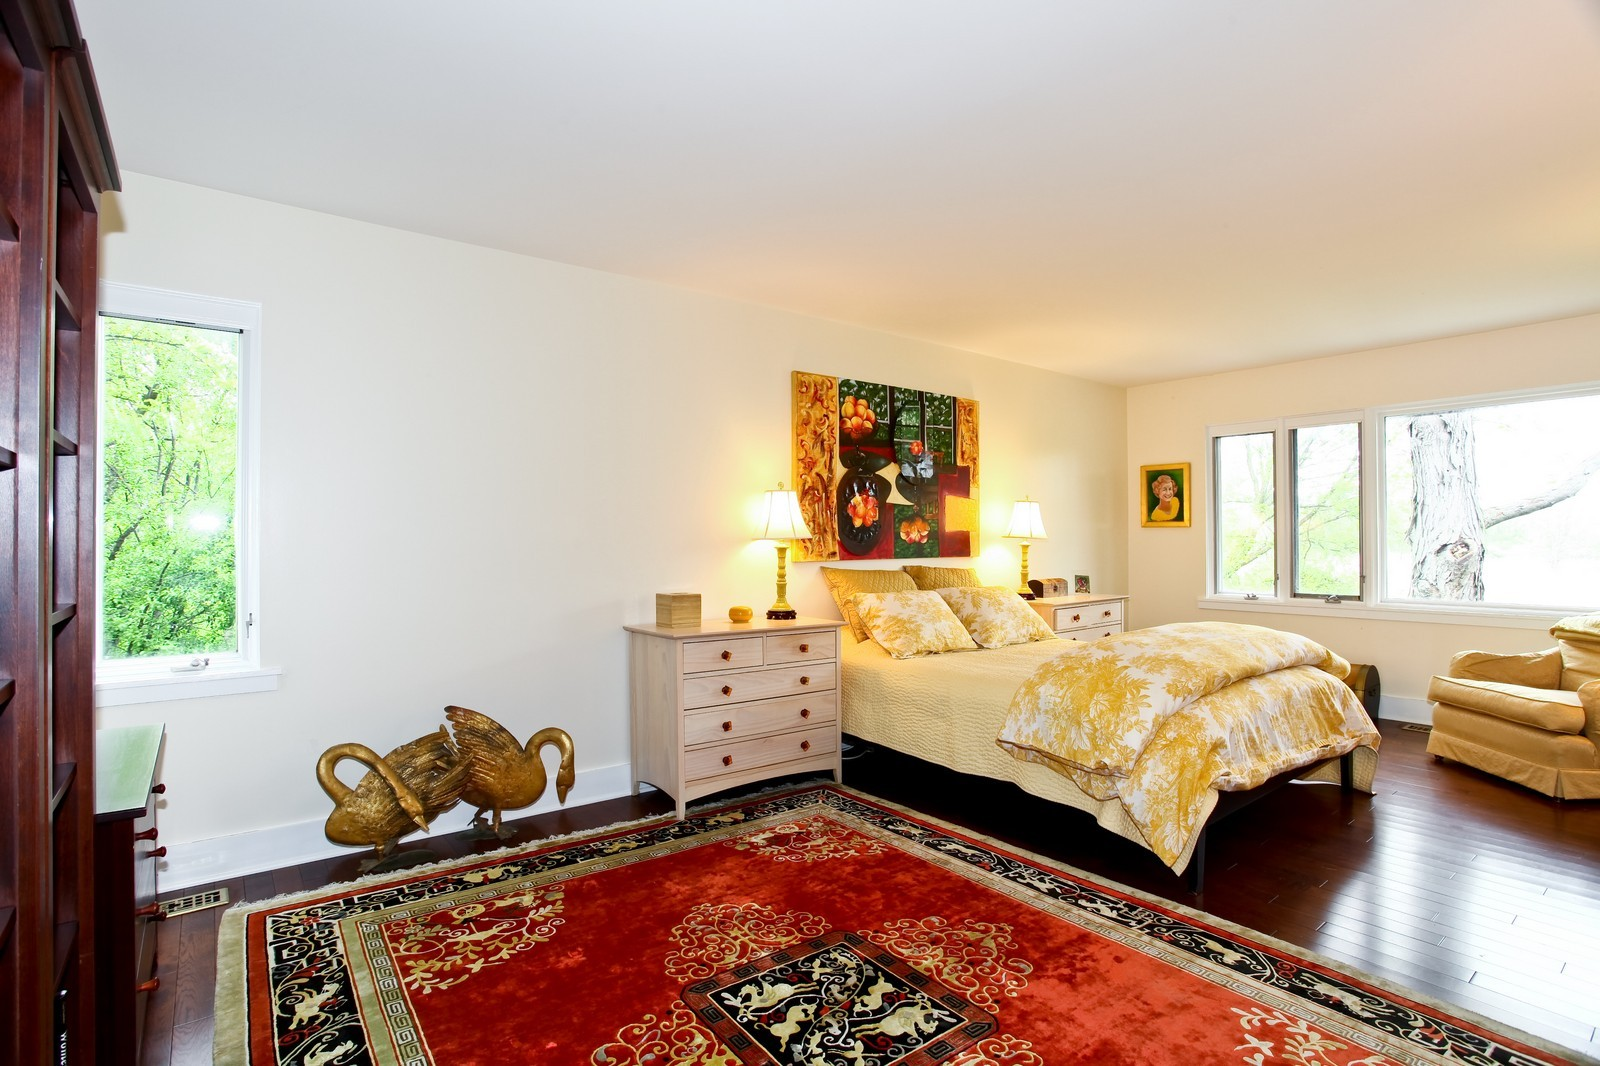 Real Estate Photography - 1S621 Bender, West Chicago, IL, 60185 - Location 3